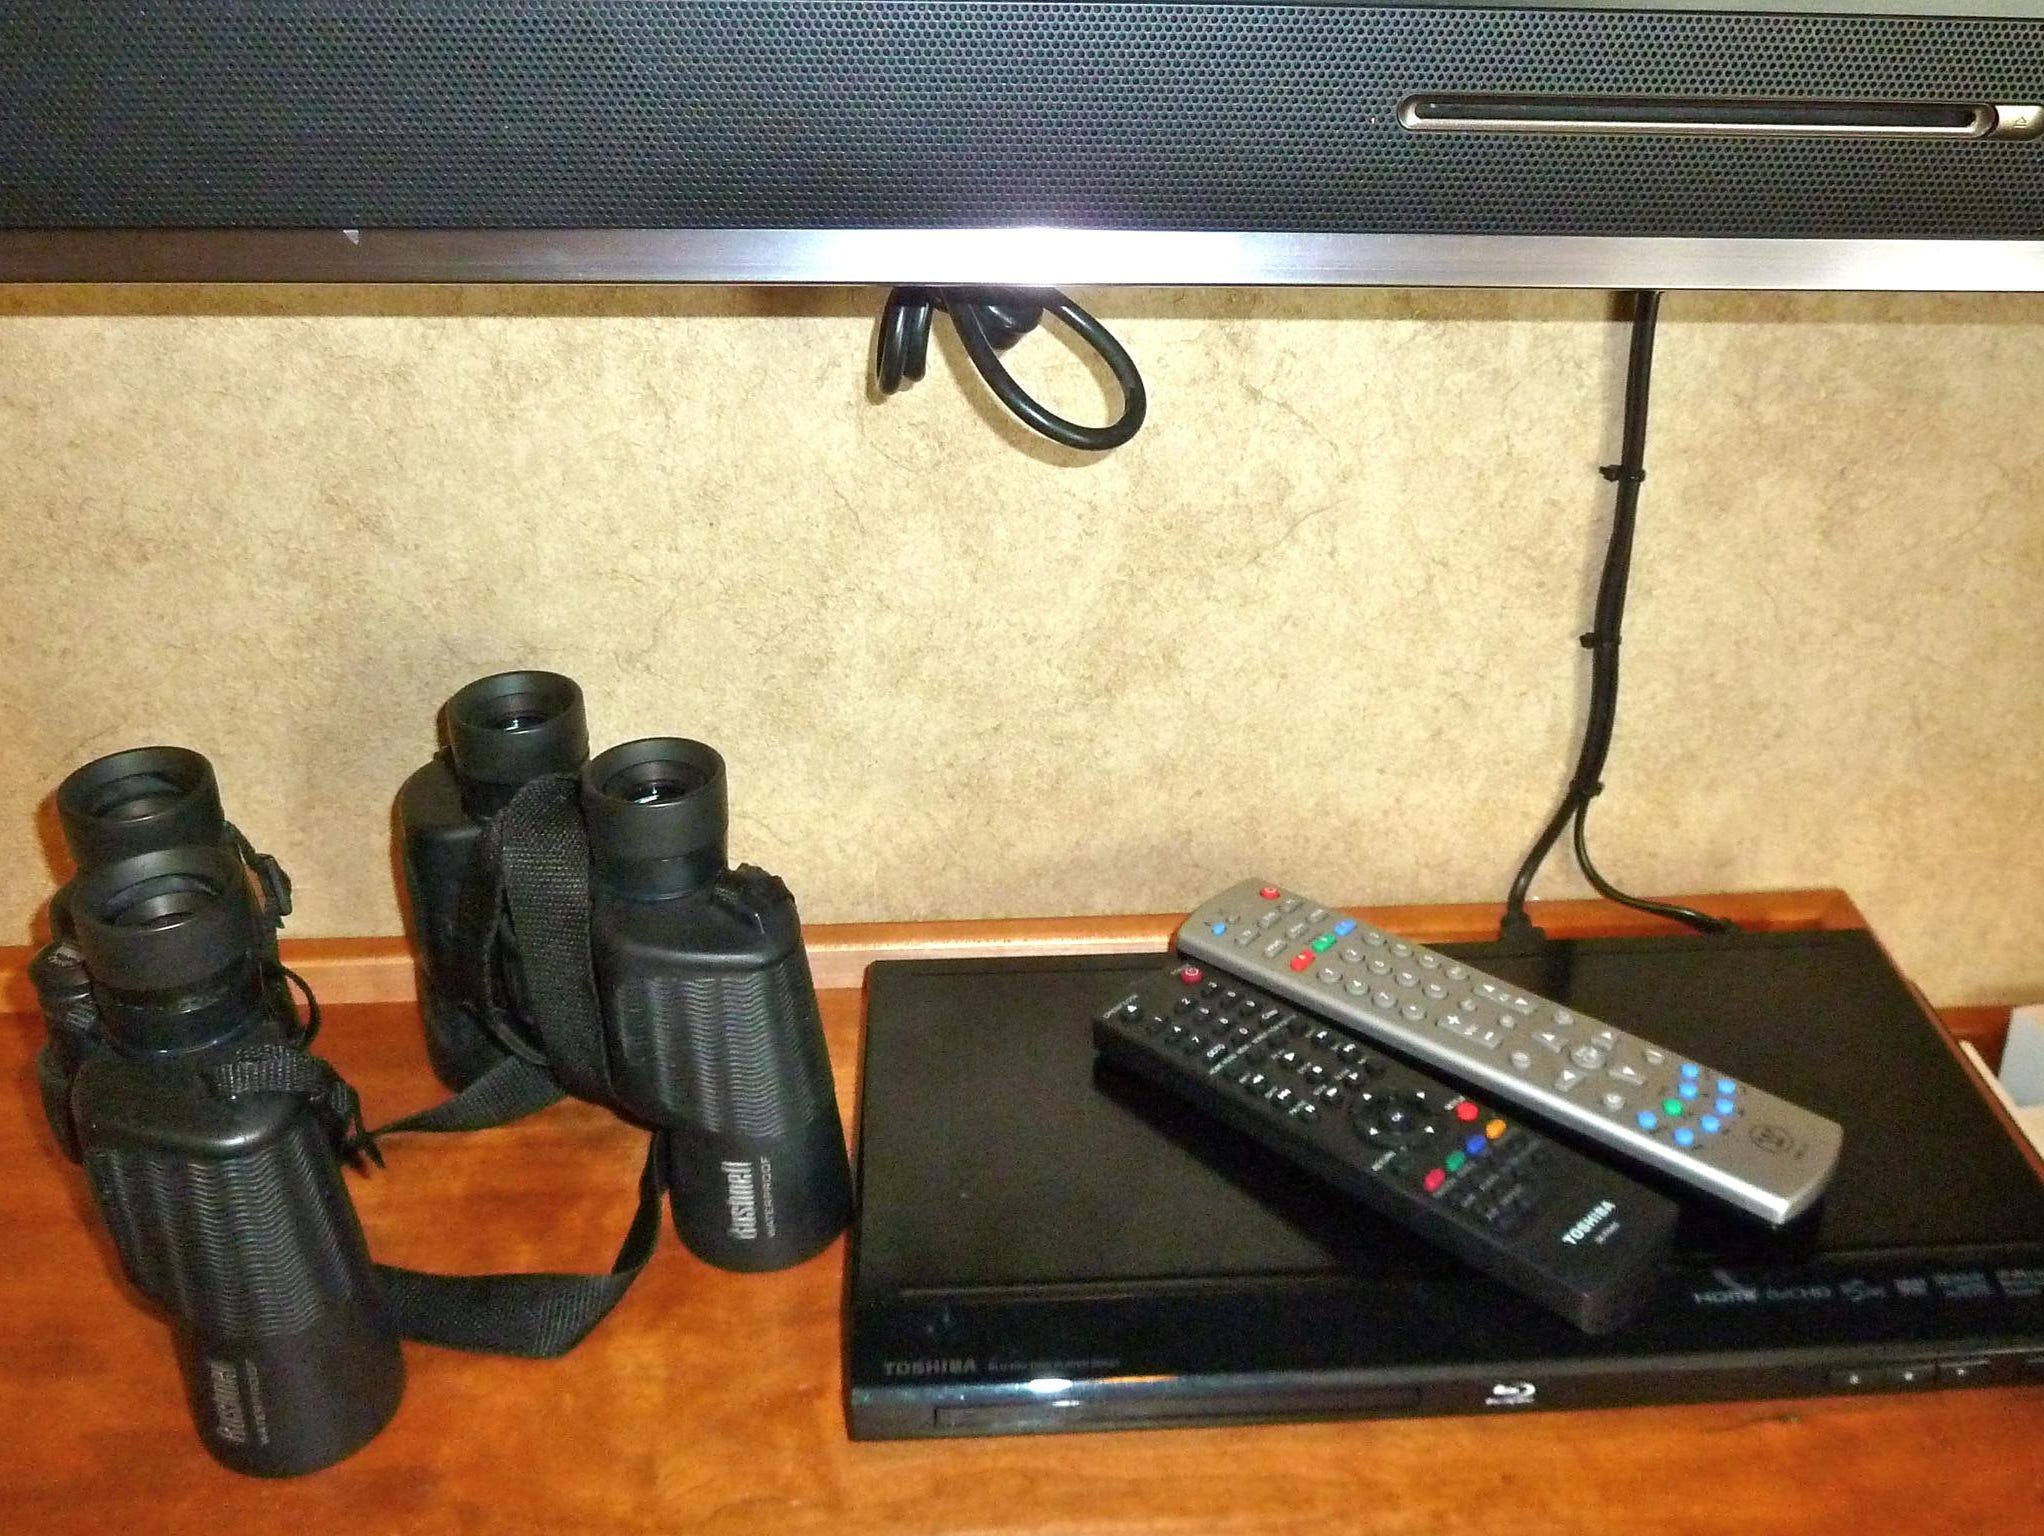 All Safari Explorer cabins are provided with two pairs of binoculars, iPod docking stations and DVD players for use with the flat-screen televisions.